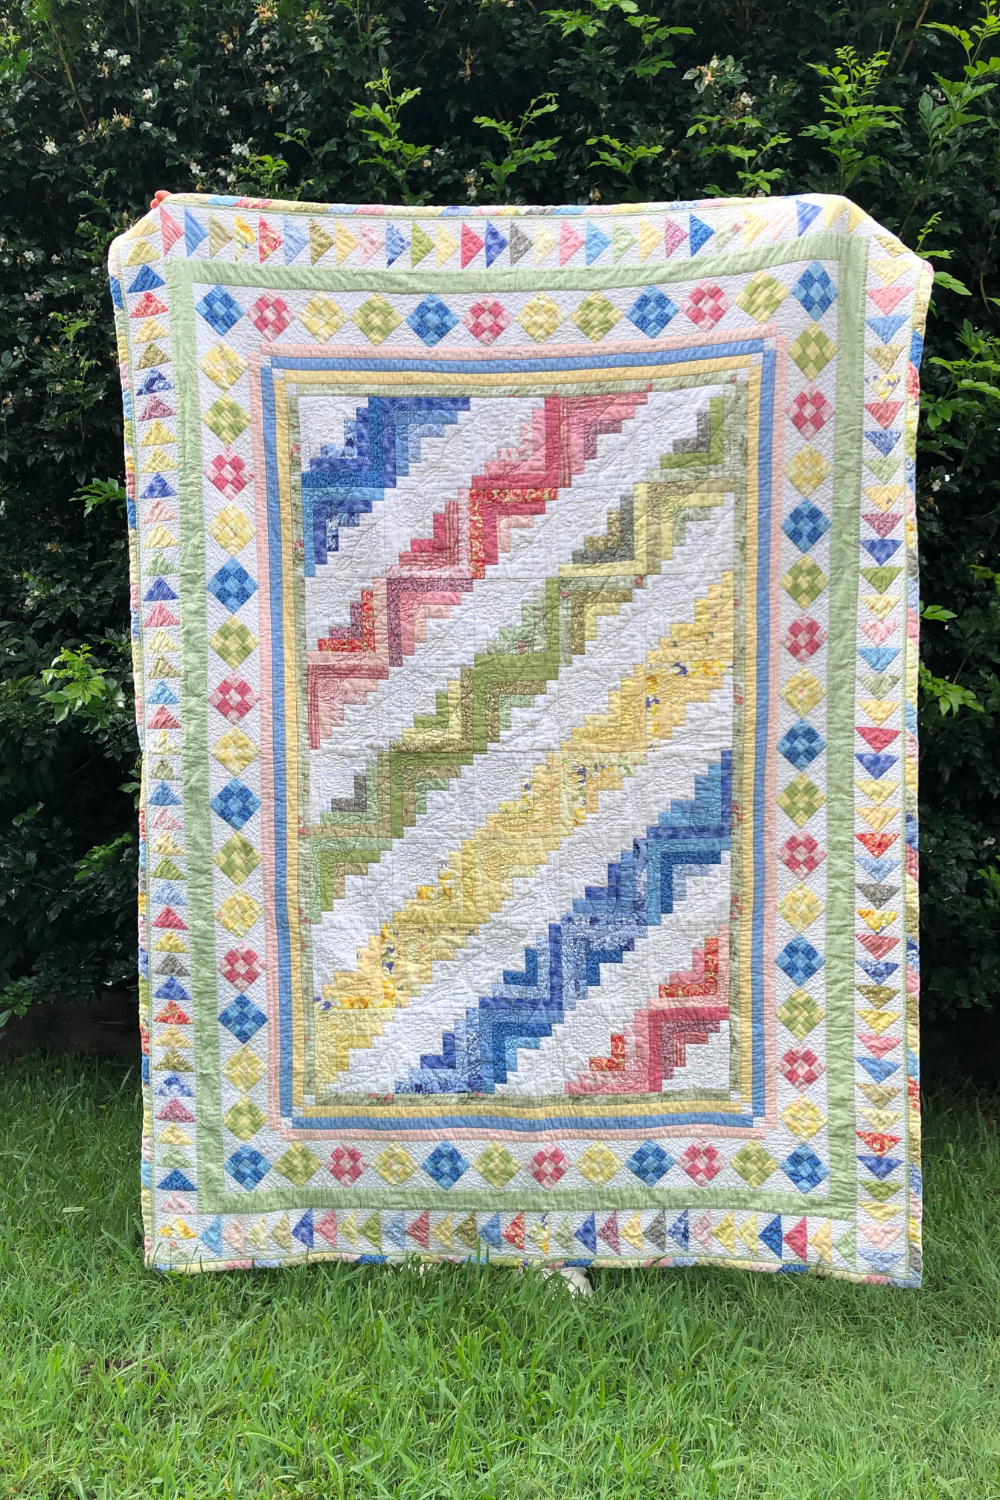 First quilt Xanthe made out in the summer wild | What's in your sewing bag Wife-Made? | Shannon Fraser Designs' series #sewingbag